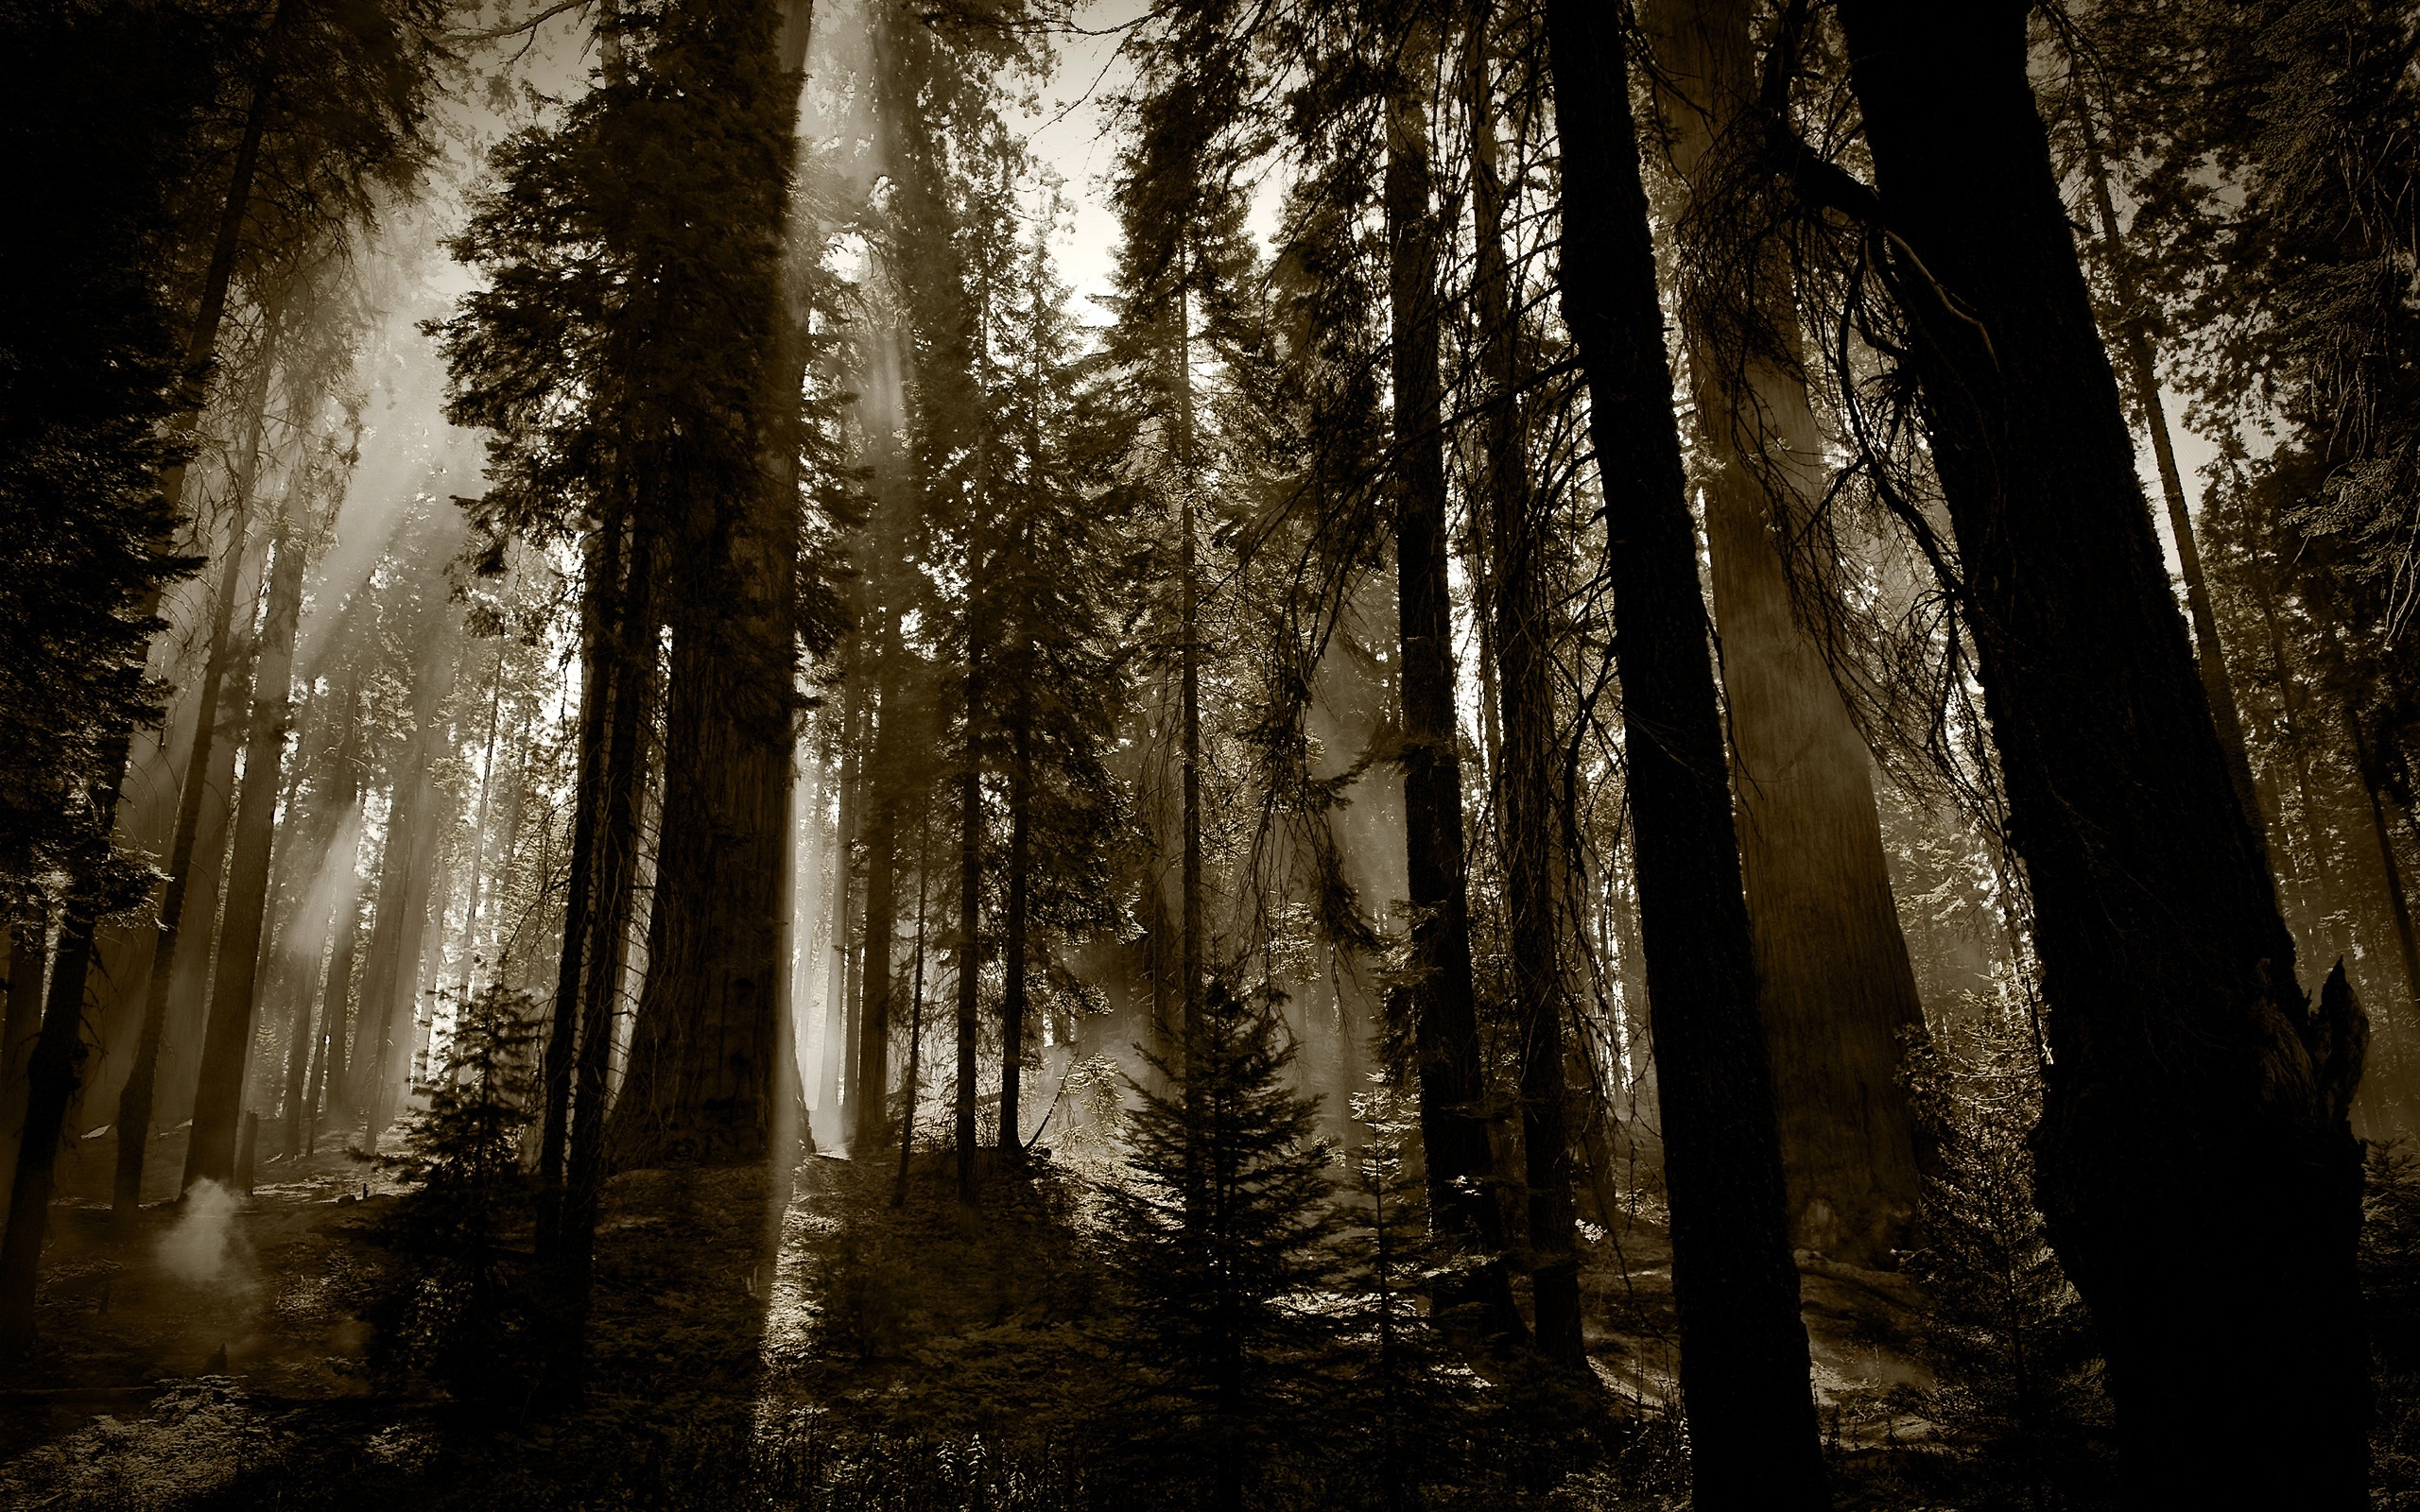 Dark Woods Wallpaper 20376 2560x1600 Px Hdwallsource Com